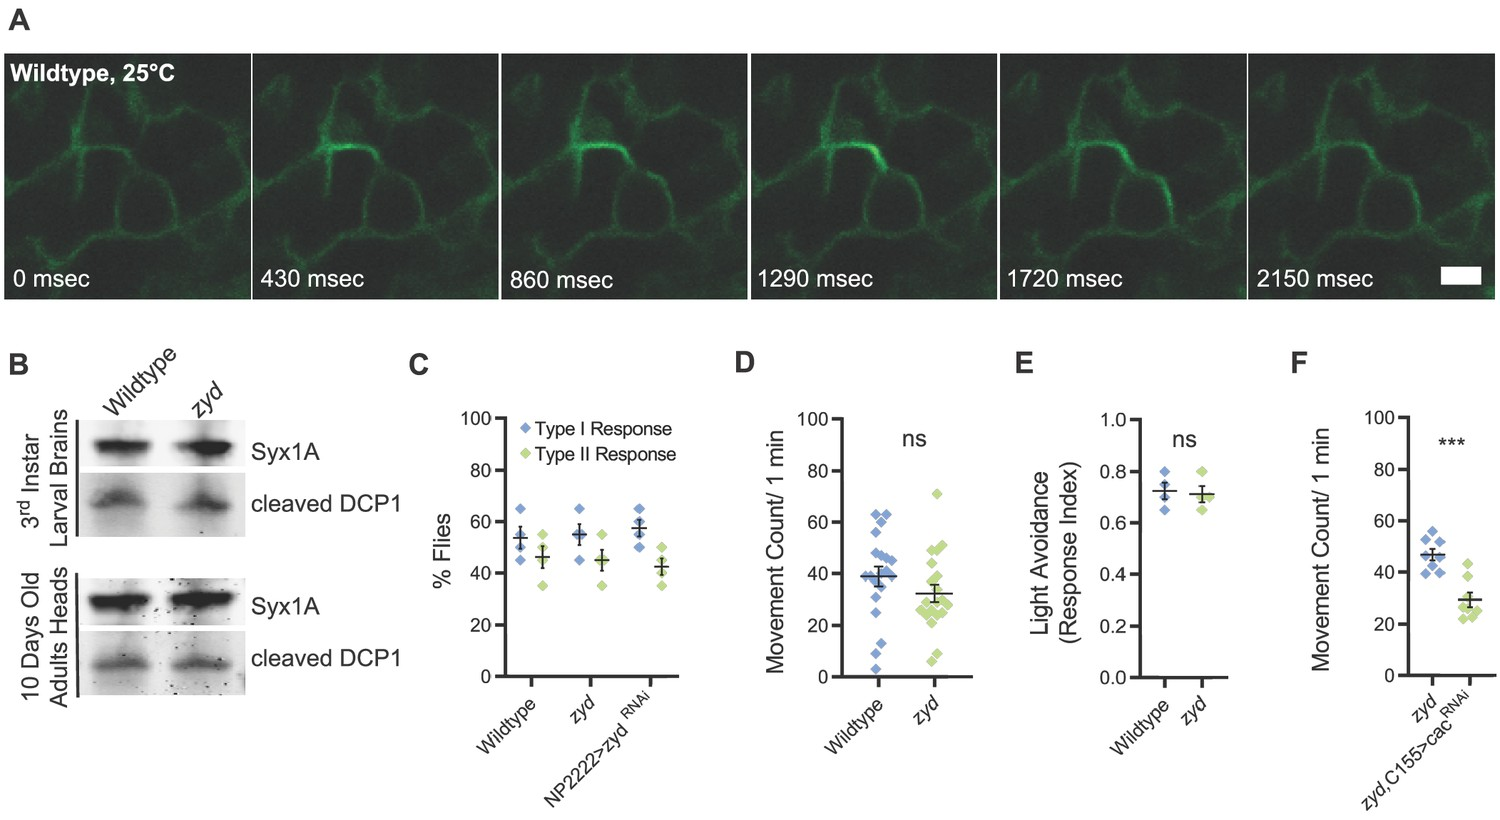 hight resolution of mutations in a cortex glial nckx generate stress induced seizures without affecting brain structure or baseline neuronal function